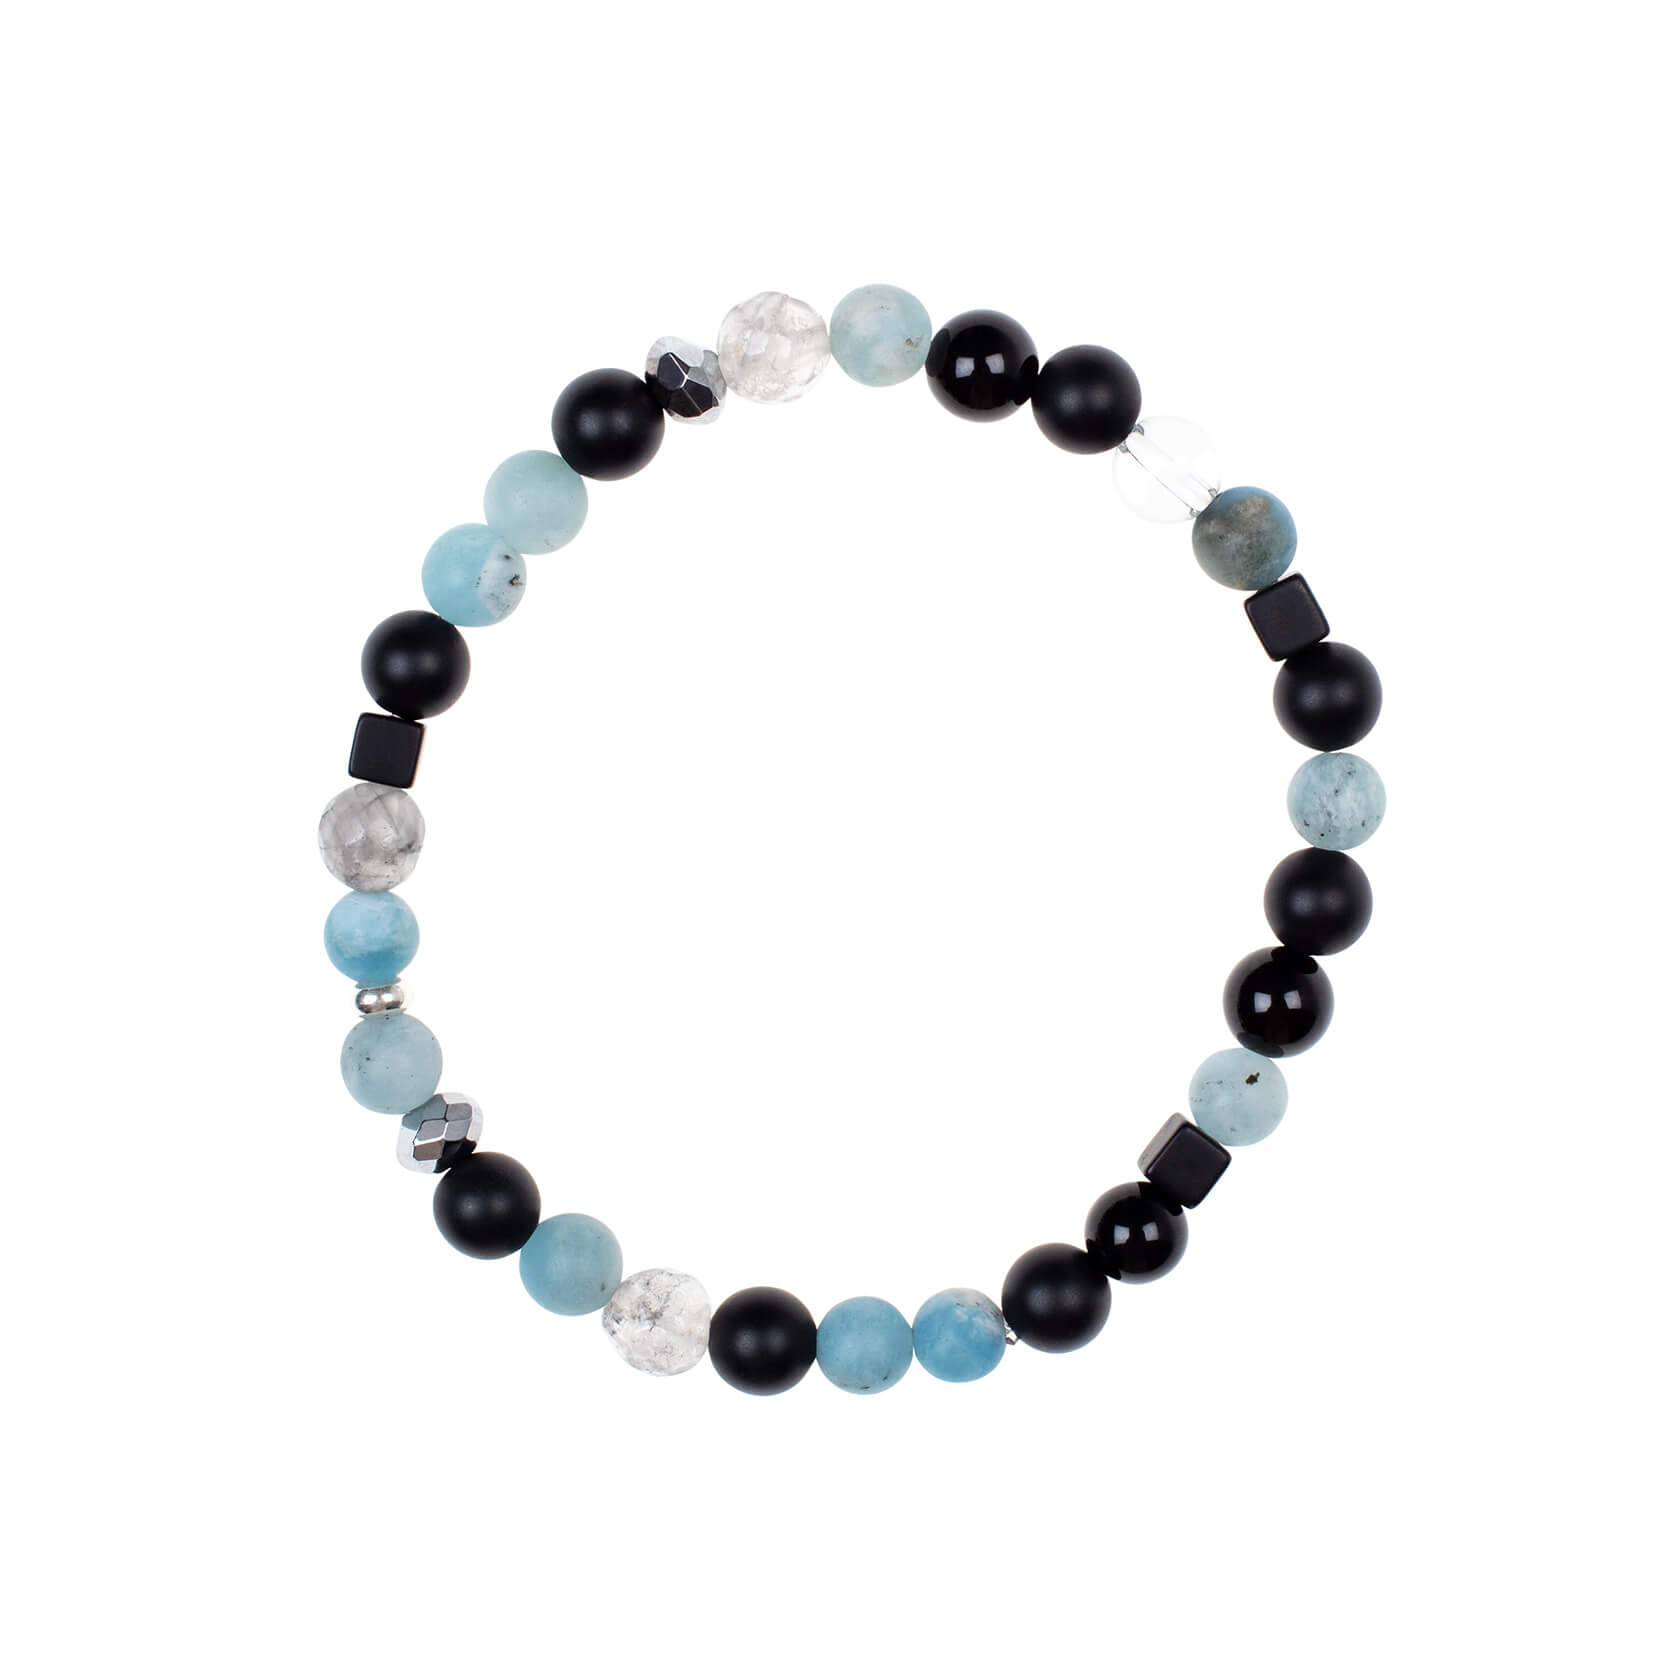 Quartz and aquamarine unisex bracelet